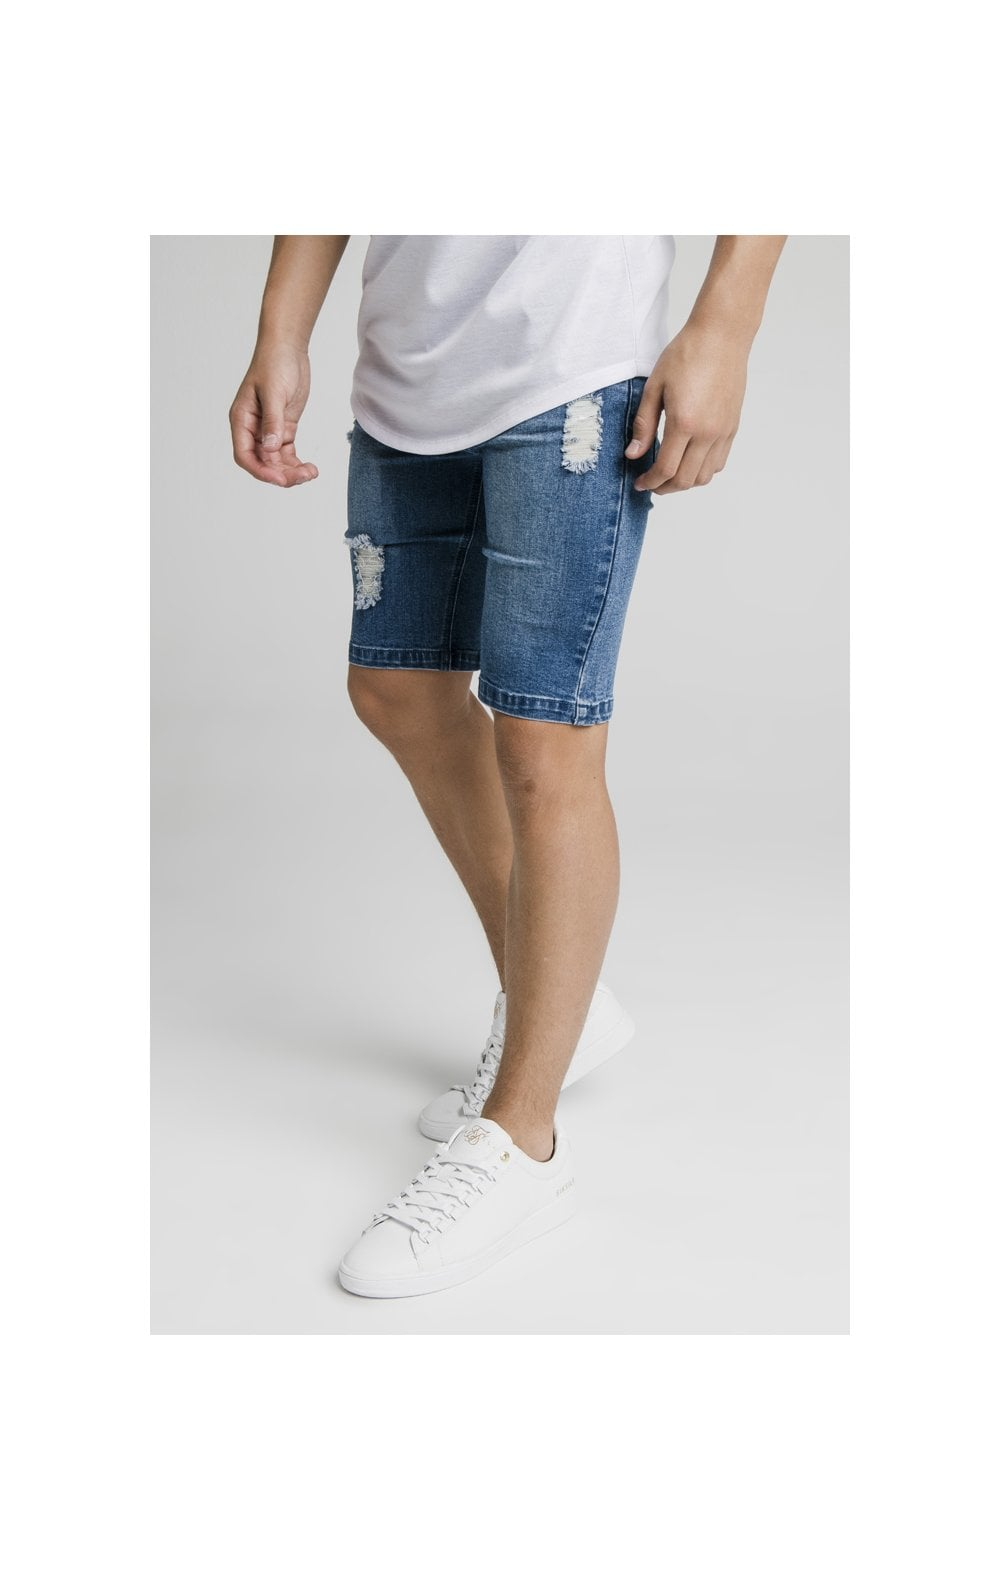 Load image into Gallery viewer, Illusive London Distressed Denim Shorts - Midstone (1)